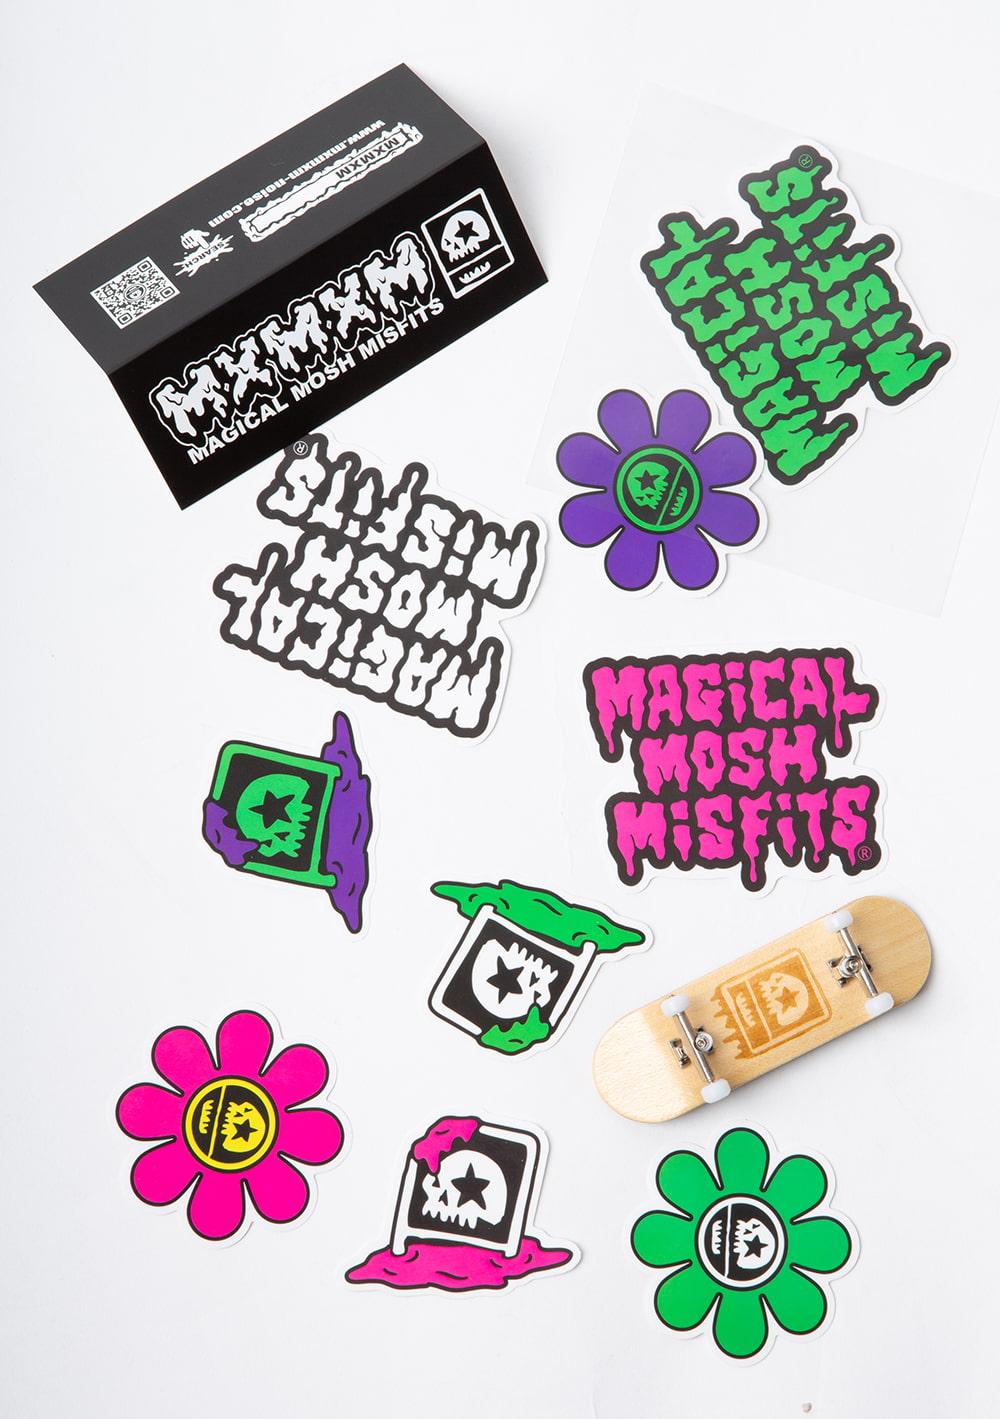 [SOLD OUT]MxMxM STICKERx9 PACK